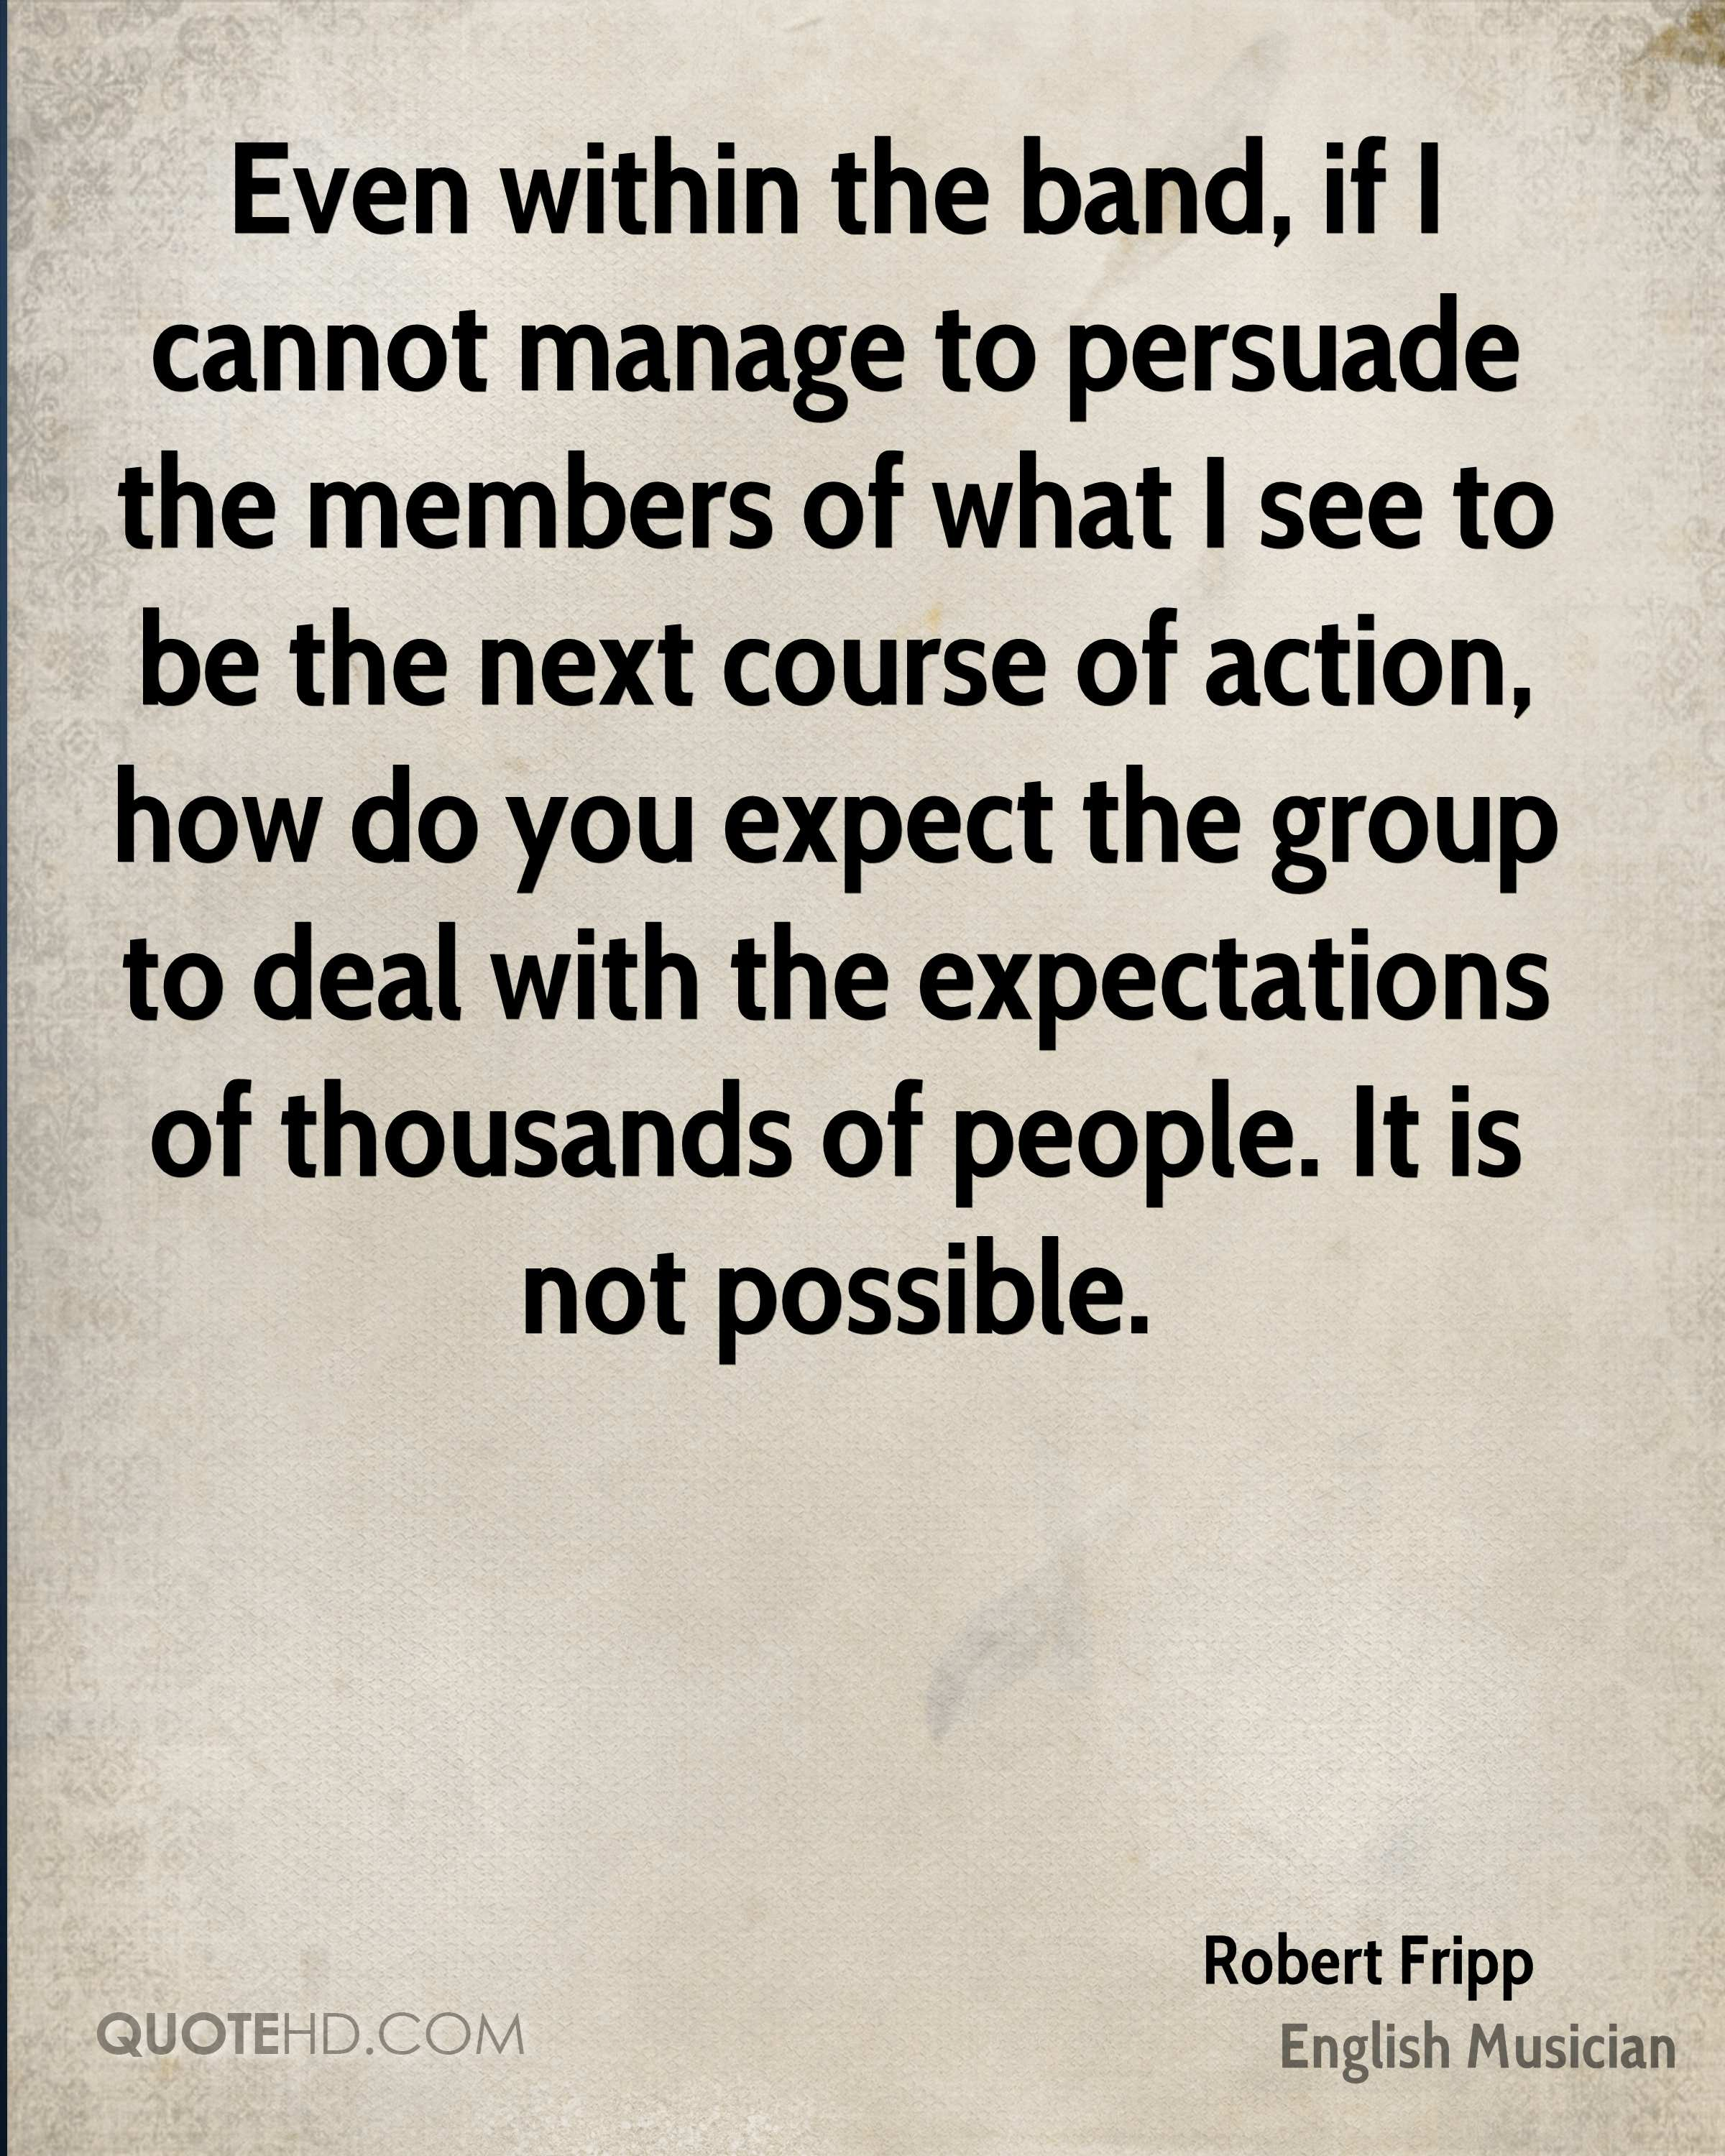 Even within the band, if I cannot manage to persuade the members of what I see to be the next course of action, how do you expect the group to deal with the expectations of thousands of people. It is not possible.